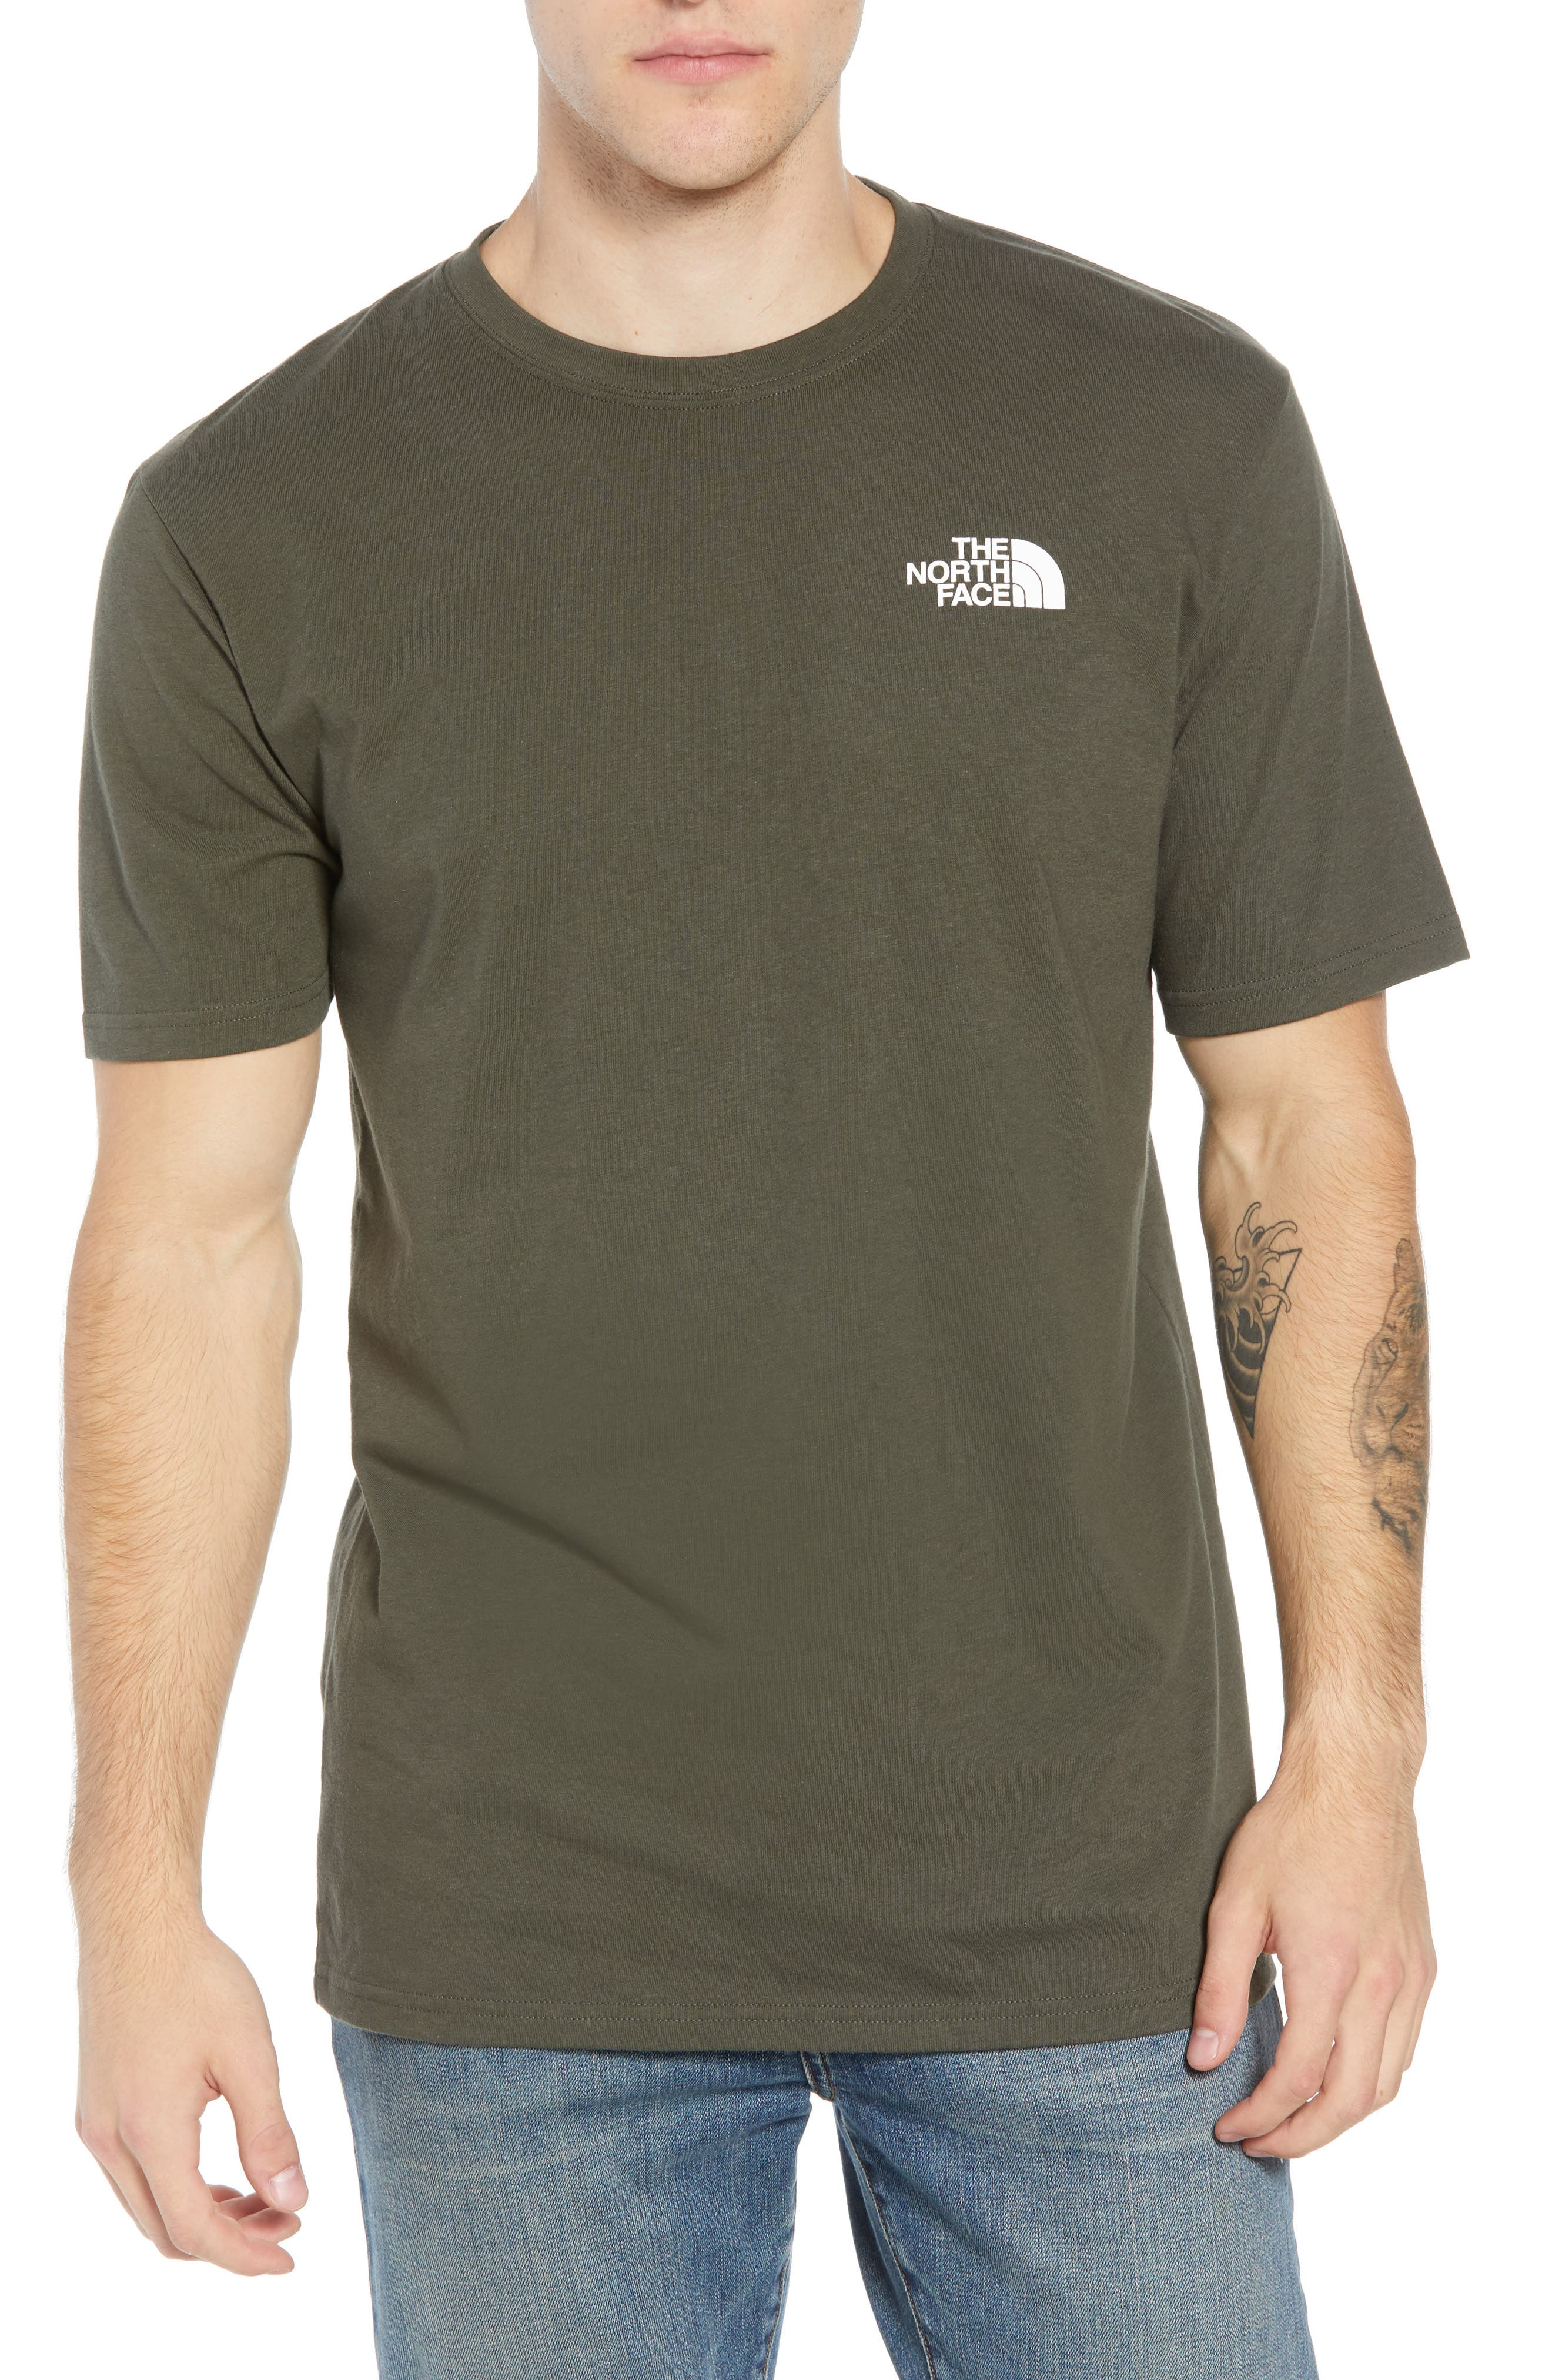 'Red Box' Graphic T-Shirt,                             Main thumbnail 1, color,                             TAUPE GREEN/ TNF BLACK